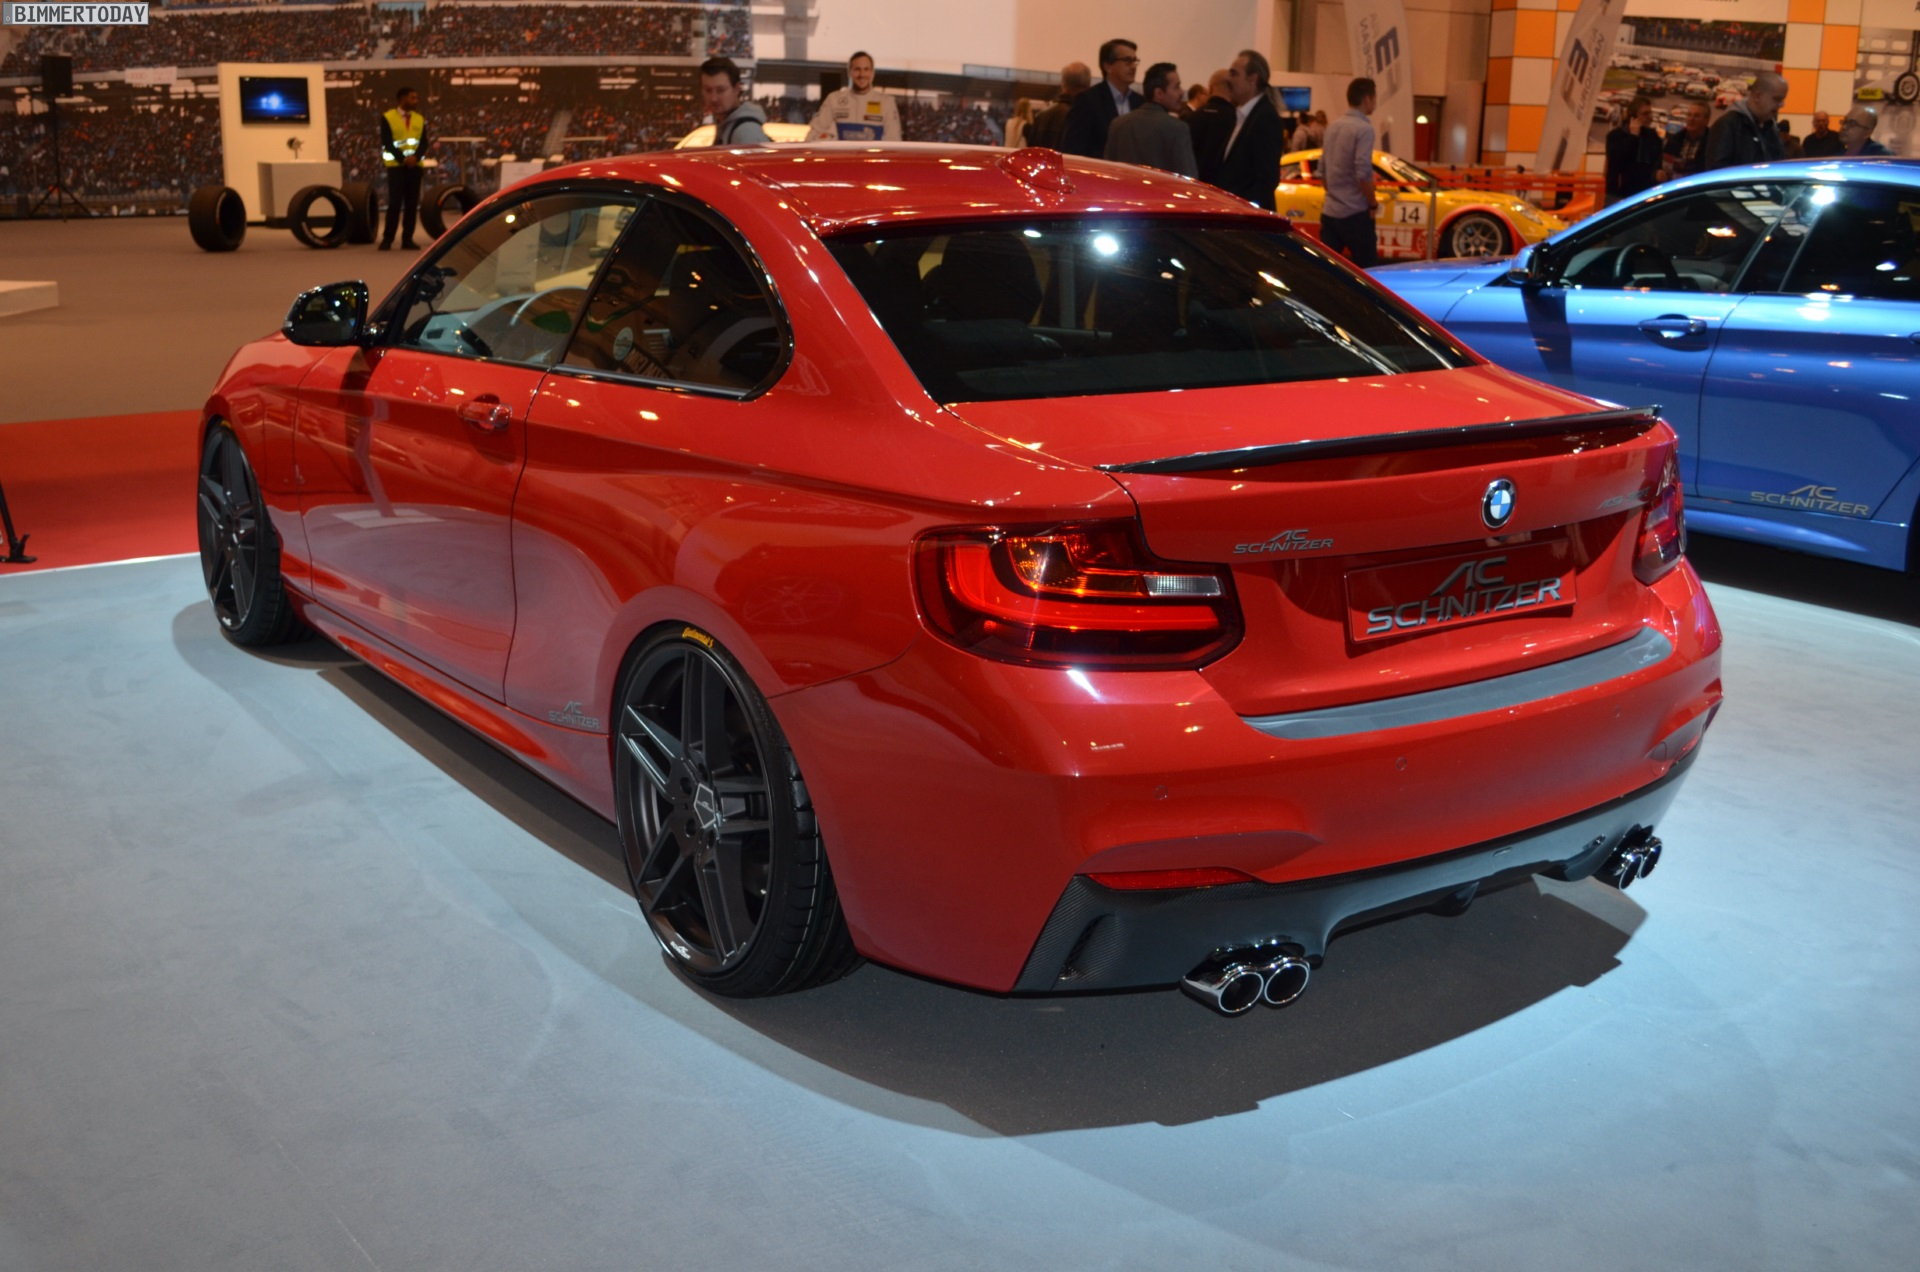 ac schnitzer bmw m235i with 380 hp. Black Bedroom Furniture Sets. Home Design Ideas